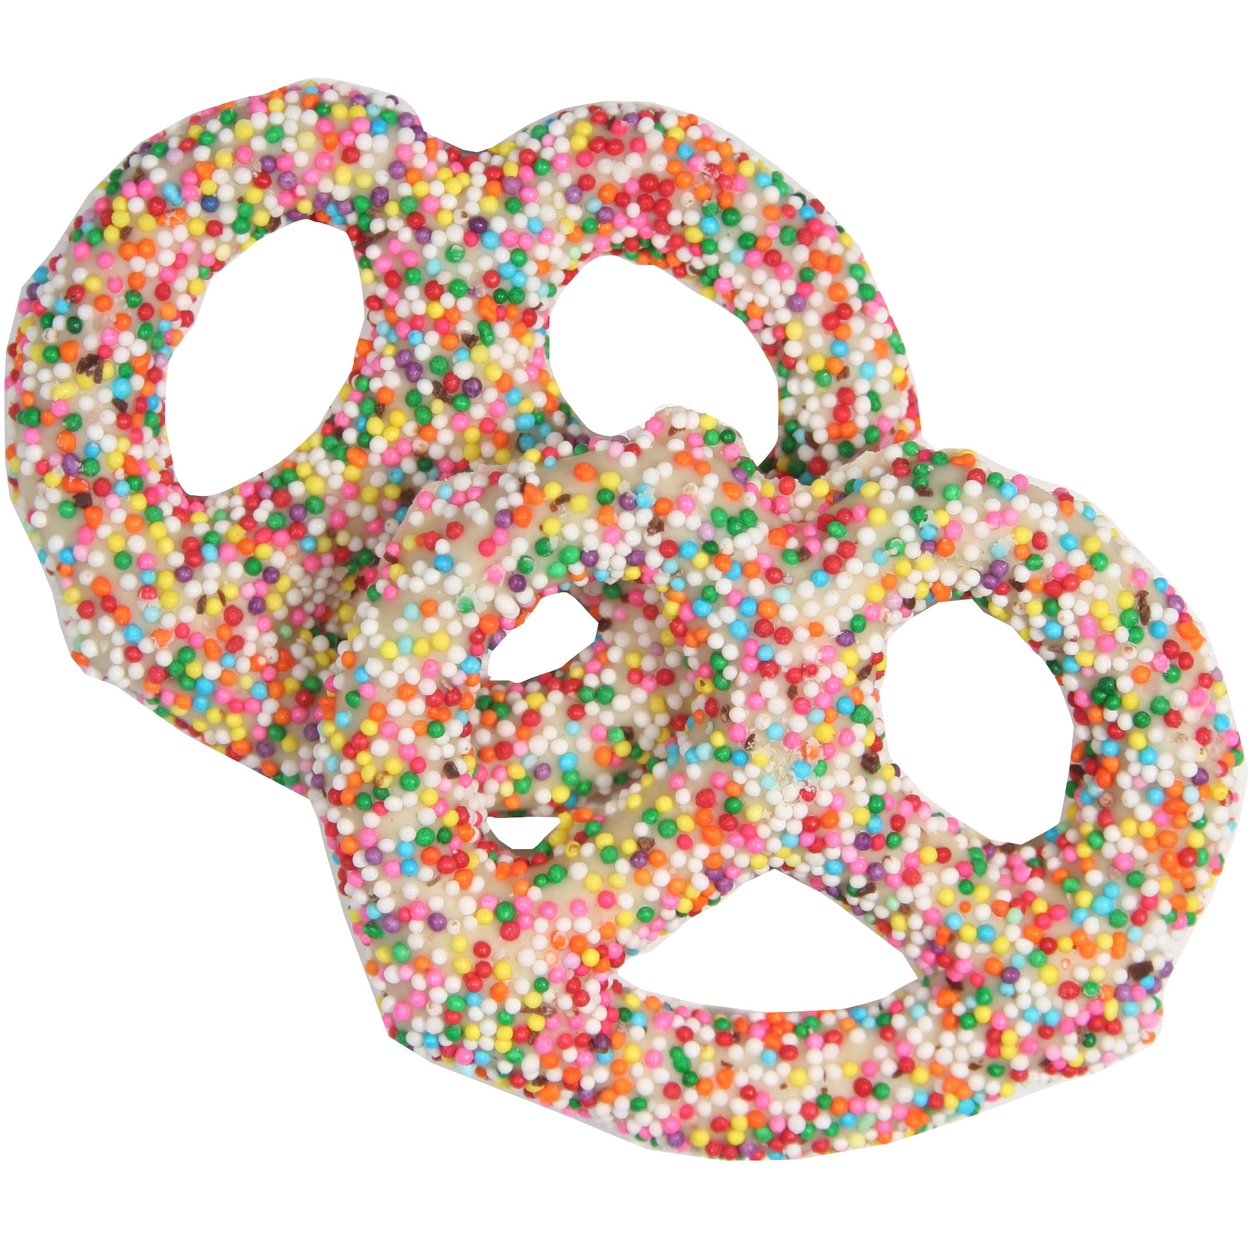 White Chocolate Covered Pretzels with Rainbow Nonpareils - 10CT ...